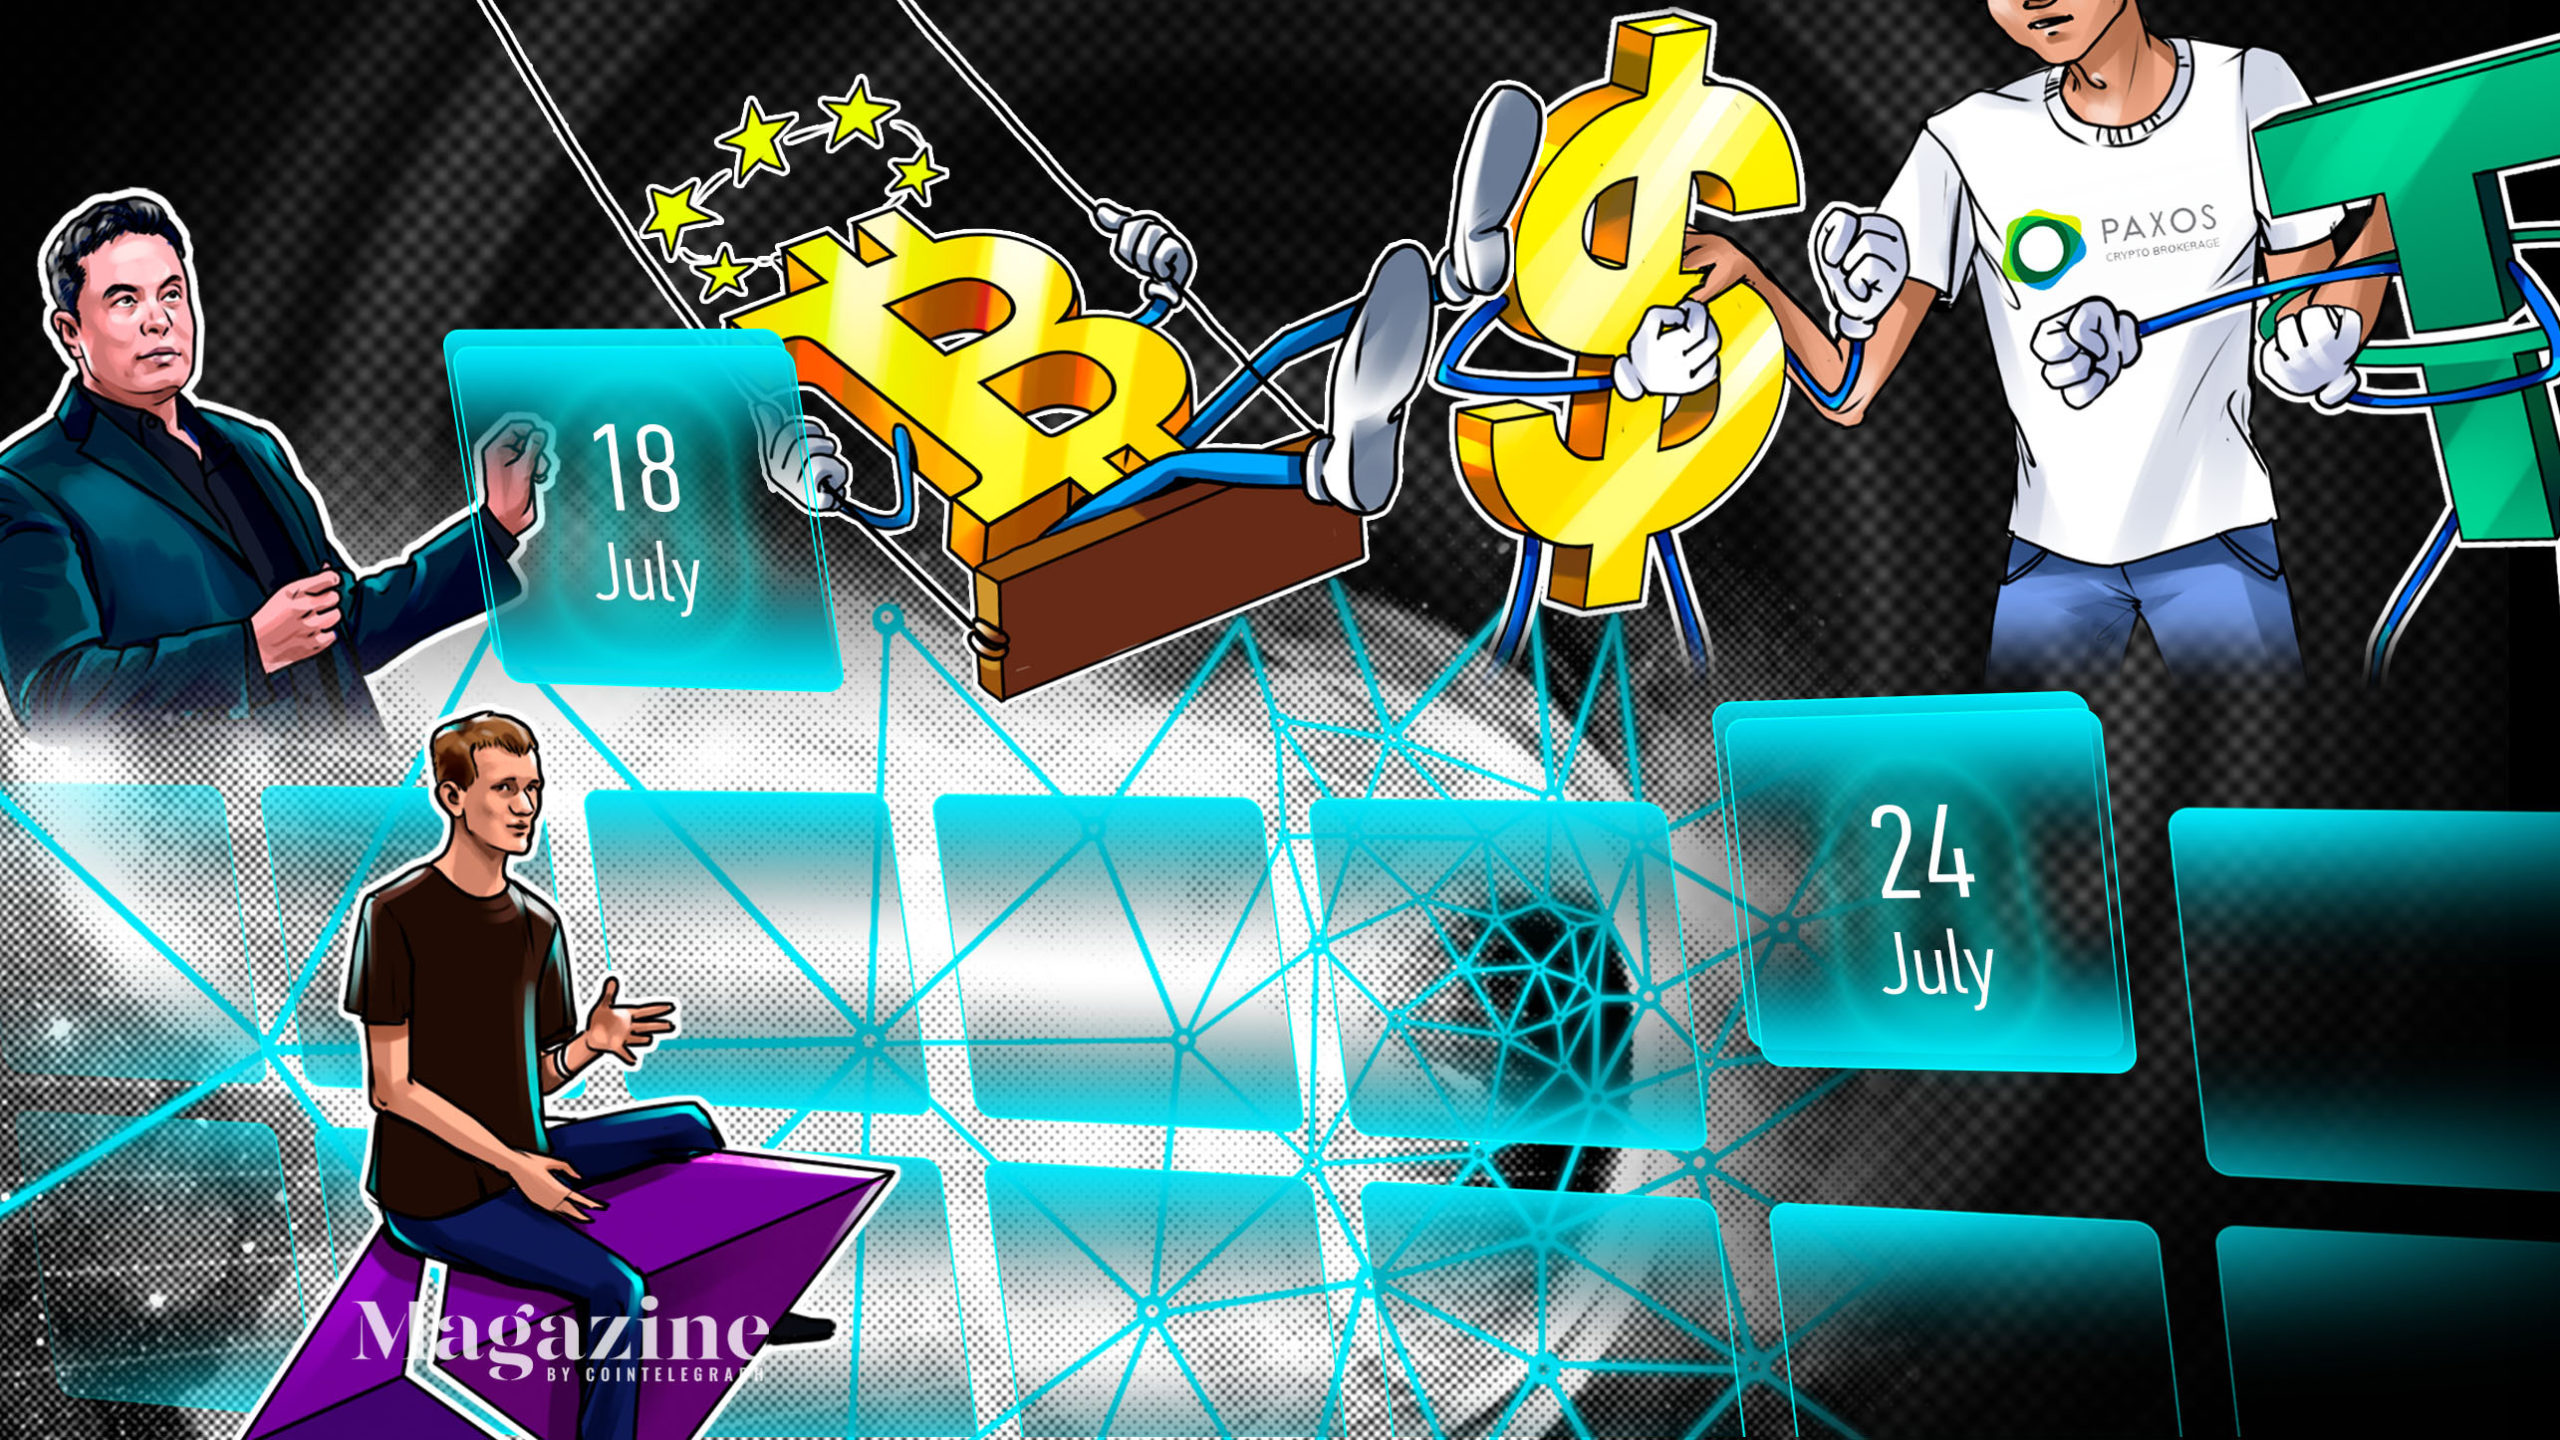 SpaceX owns BTC, daily Dogecoin volume surged in Q2, Grayscale eyeing ETF: Hodler's Digest, July 18–24